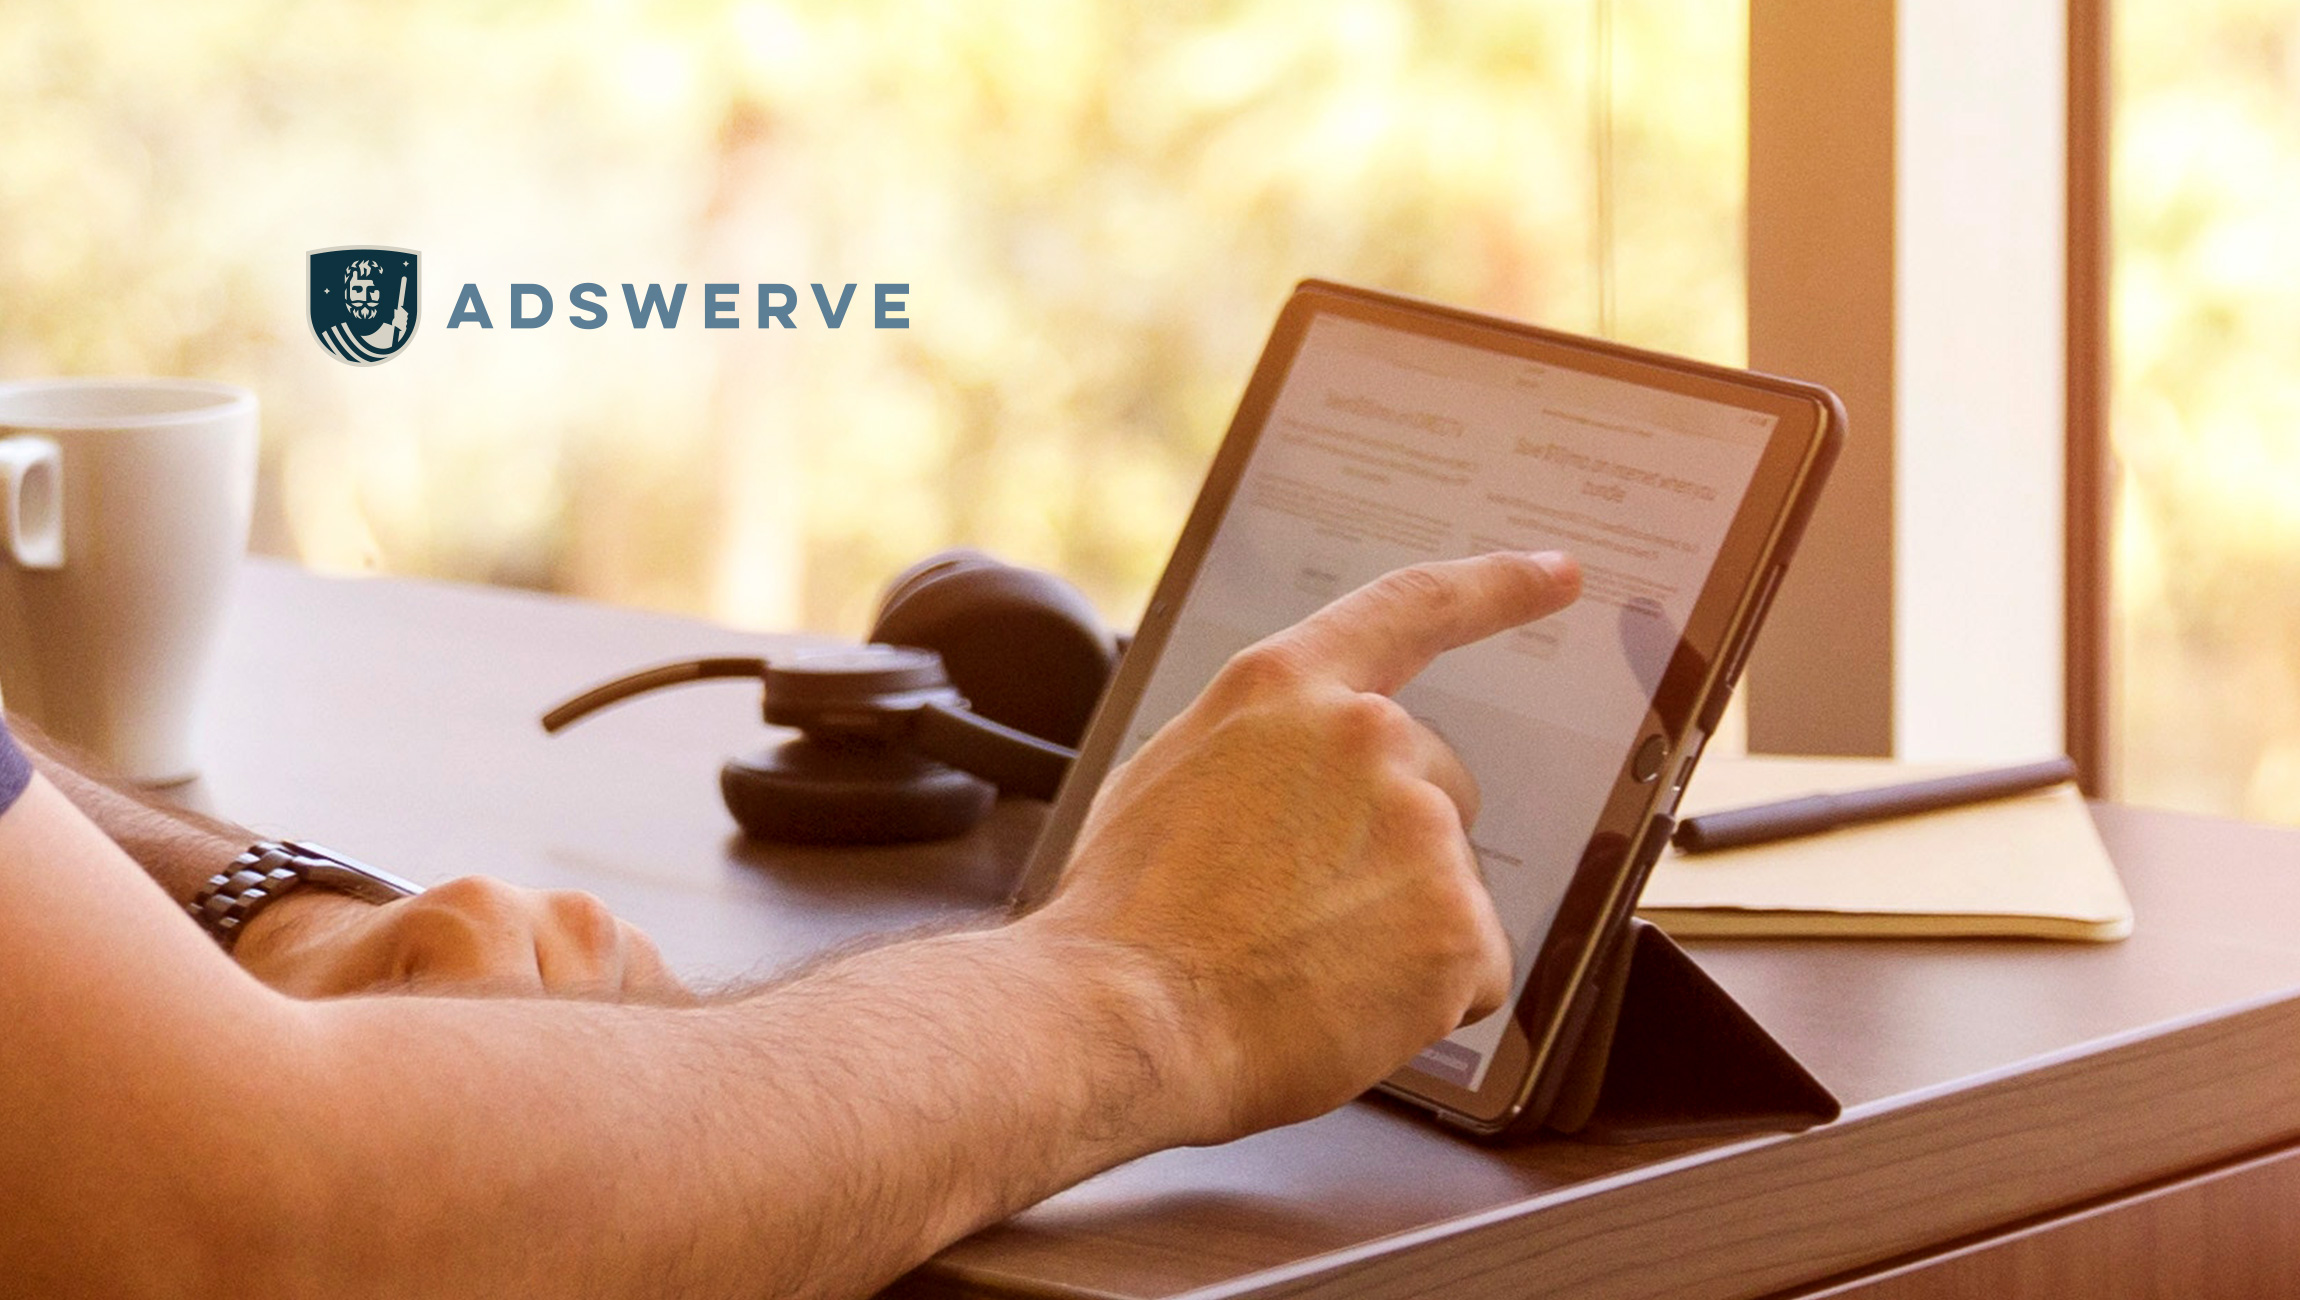 Adswerve and Google Cloud Break Down Data Silos for Marketers